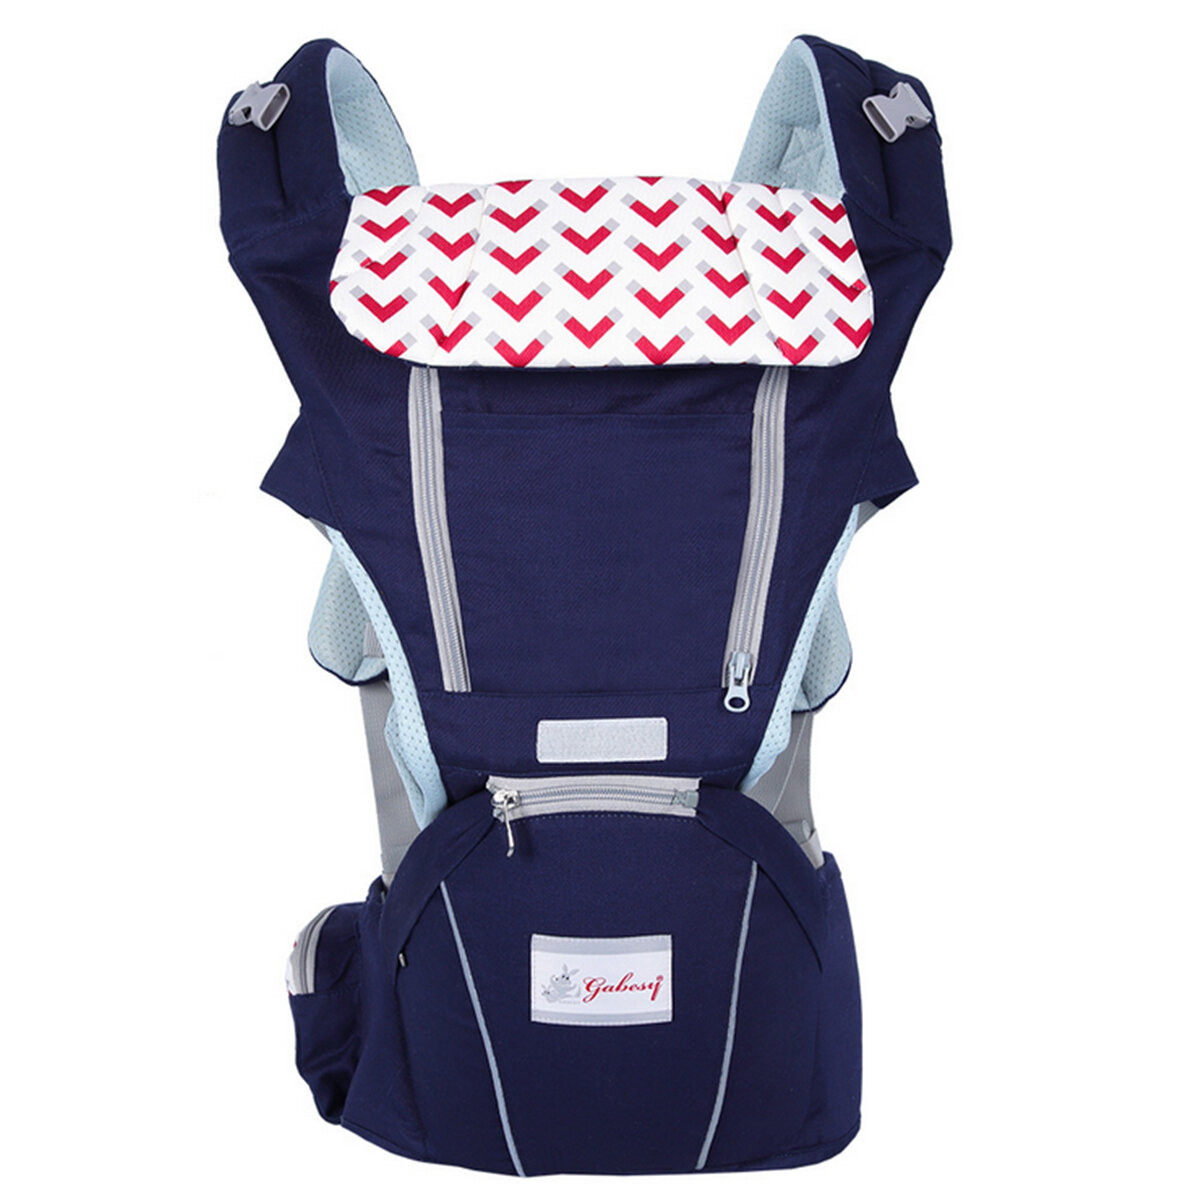 0 36 Months 3 in 1 Breathable Front Baby Carriers Waist Stool Infant Comfortable Wrap Sling Backpack - 5